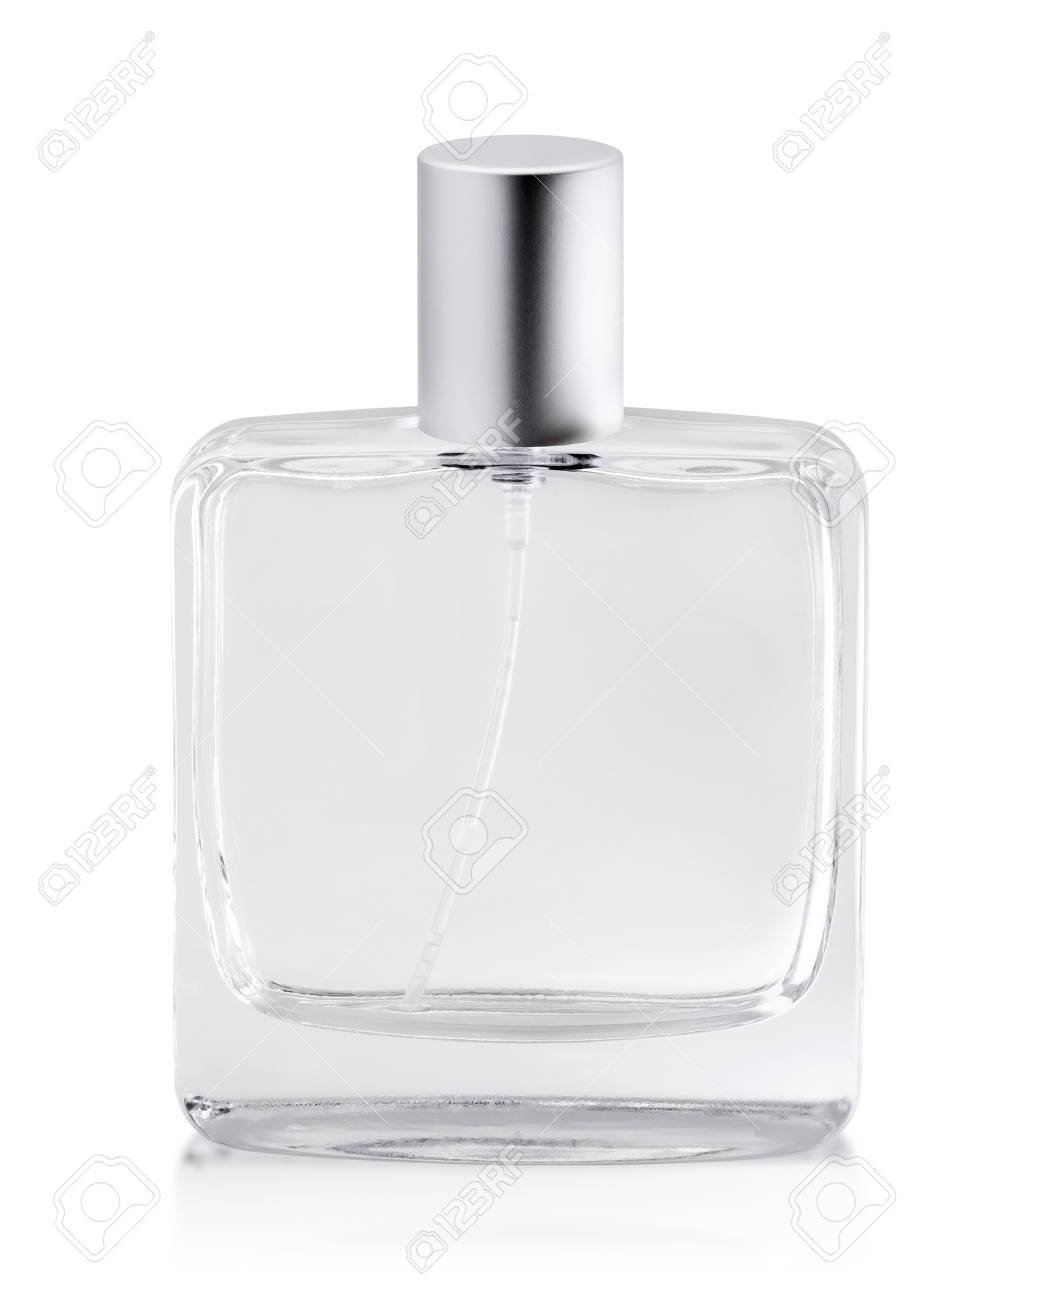 Empty perfume bottle isolated on white background. Scent container with tube. ( Clipping path object ) - 120123217